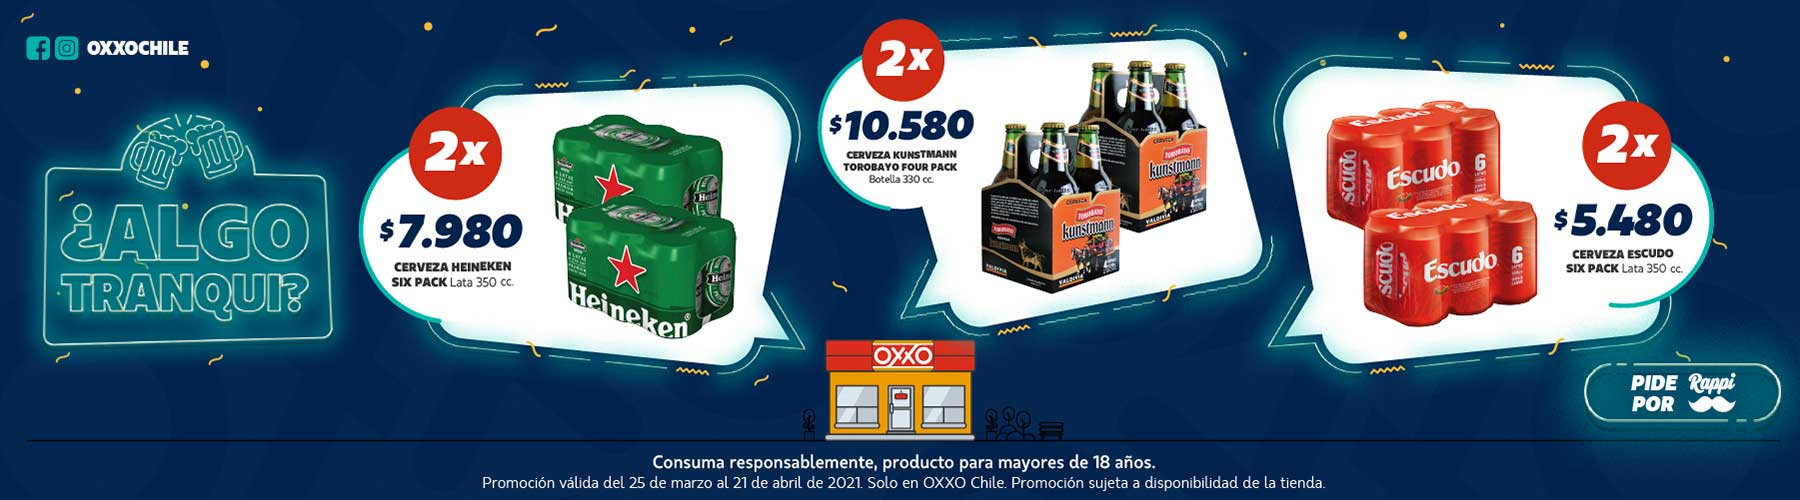 OXXO Chile Home Banner 4 P4 2021